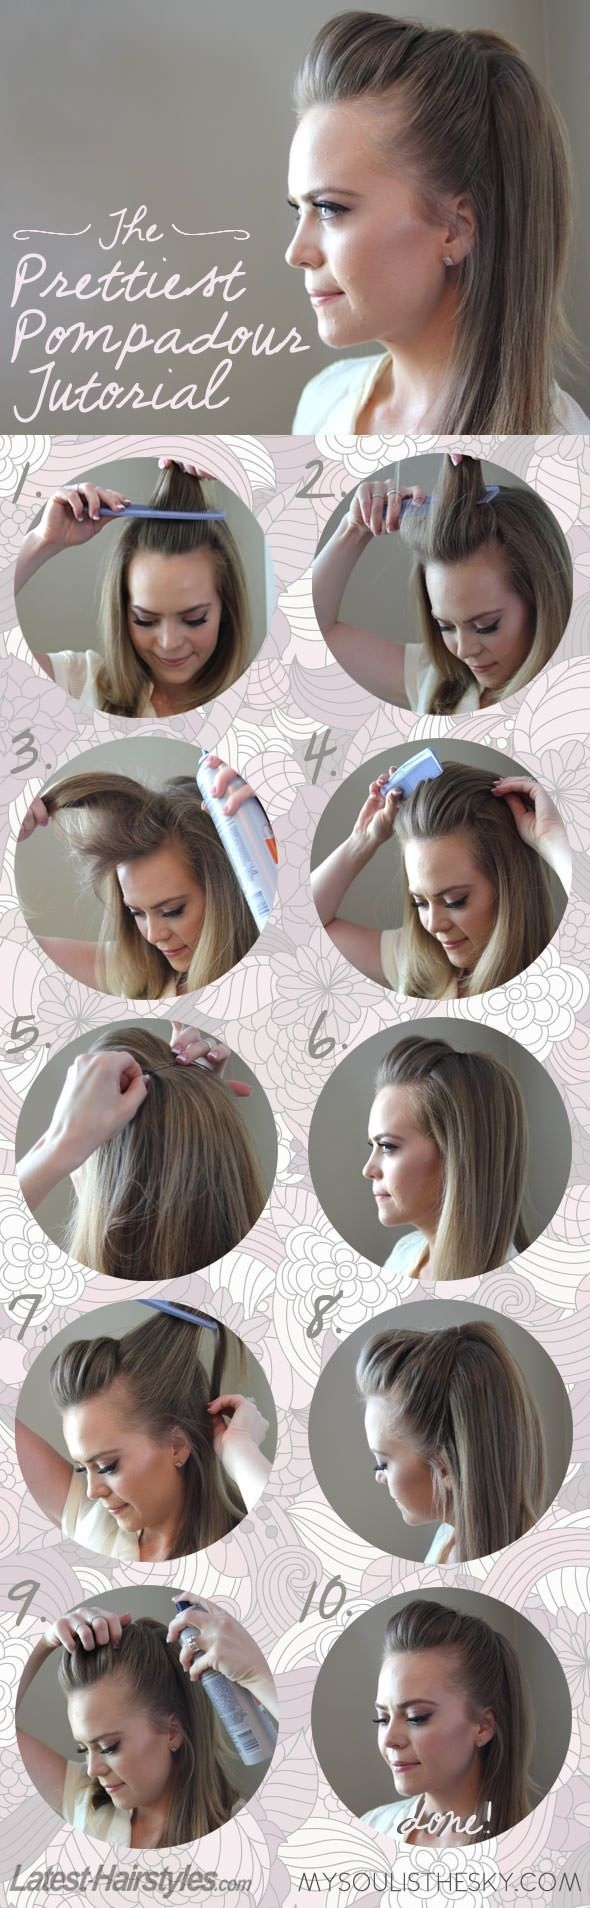 Communication on this topic: 20 Quick and Easy Work Appropriate Hairstyles, 20-quick-and-easy-work-appropriate-hairstyles/